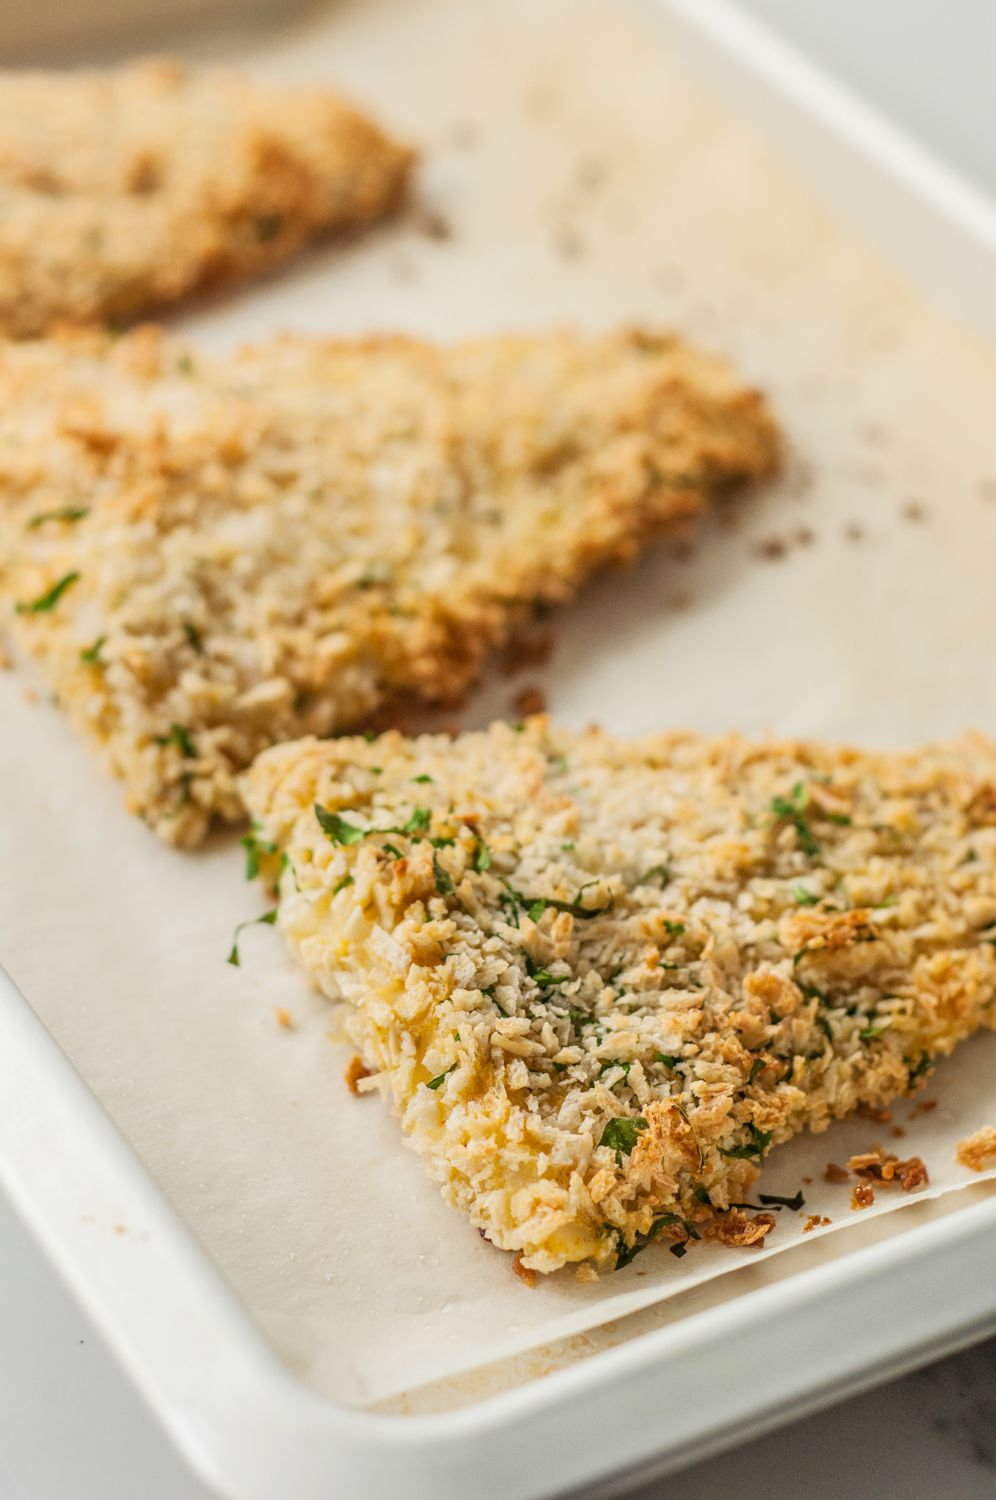 Panko-crusted baked fish on a rimmed baking sheet